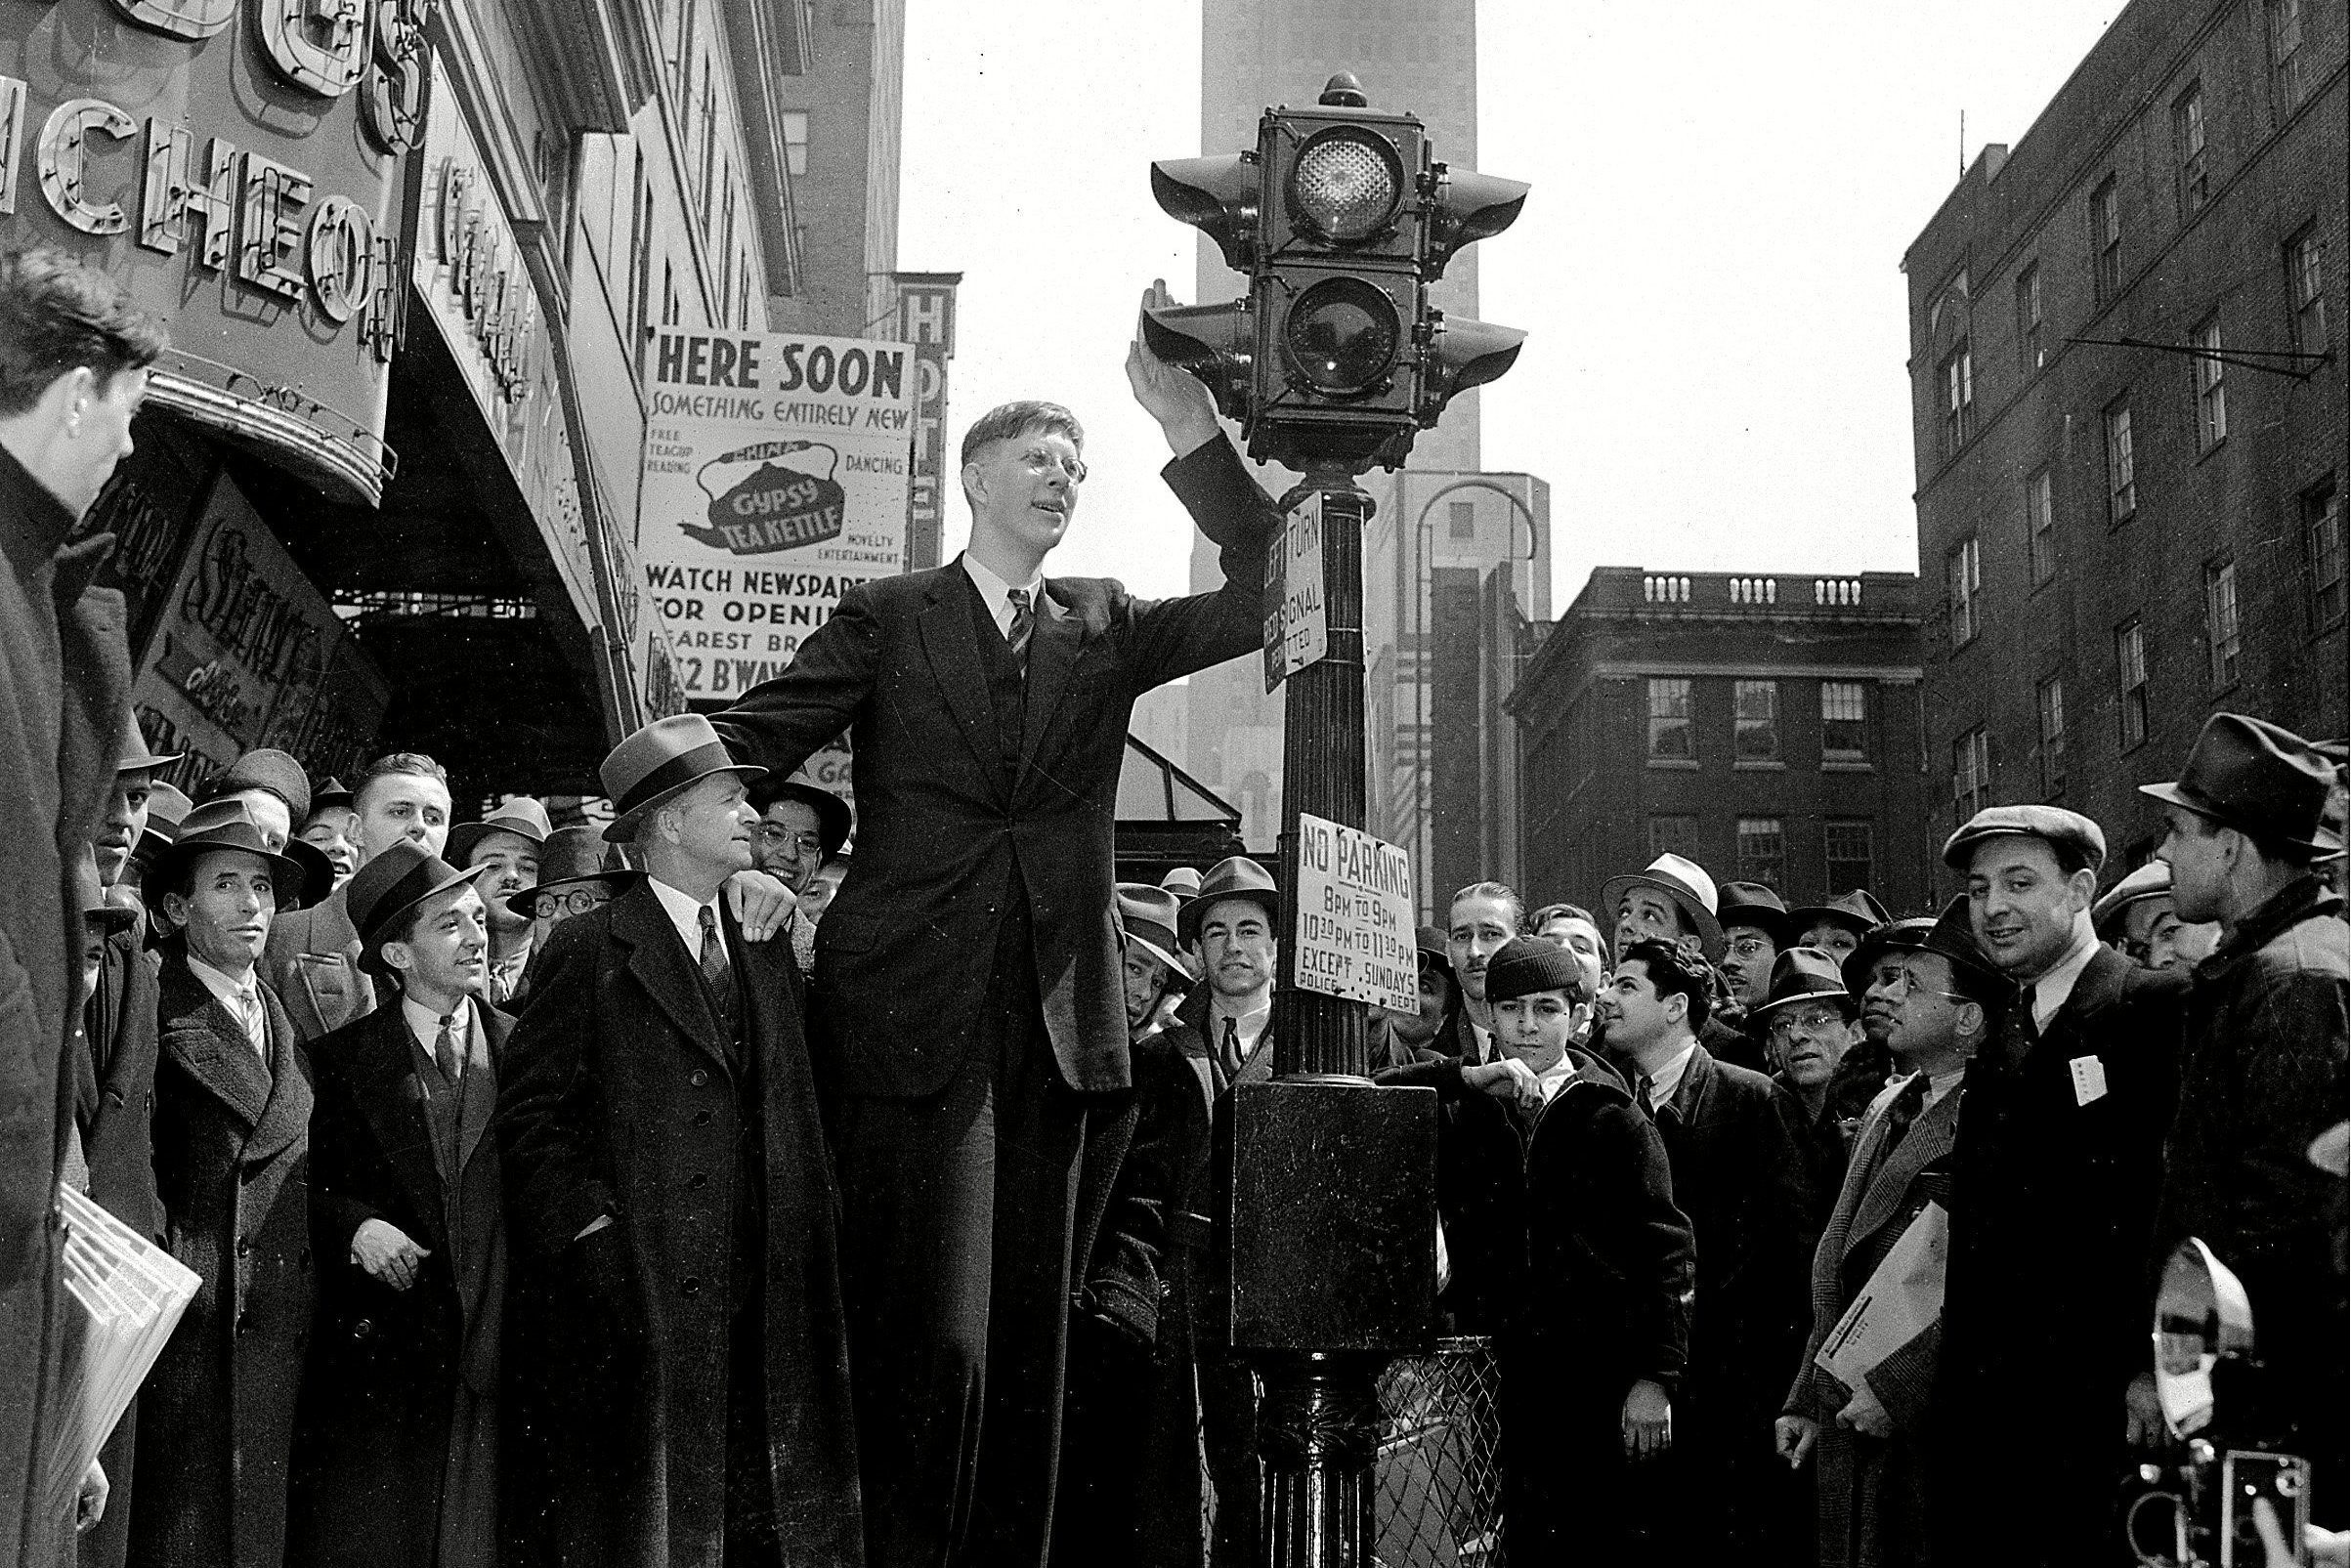 Mandatory Credit: Photo by AP/Shutterstock (6666473a) Wadlow Robert Wadlow, 18, of Alton, Ill., waits at a pedestrian traffic light as he is surrounded by a crowd in New York City, . Robert is standing with his father and manager, Harold Wadlow, left, with whom he is on a nationwide tour of schools, theaters and lecture halls. Robert, who is 8 feet and 4 inches tall, will join the Ringling Brothers Circus for a six-week appearance NYC ROBERT WADLOW, NEW YORK, USA